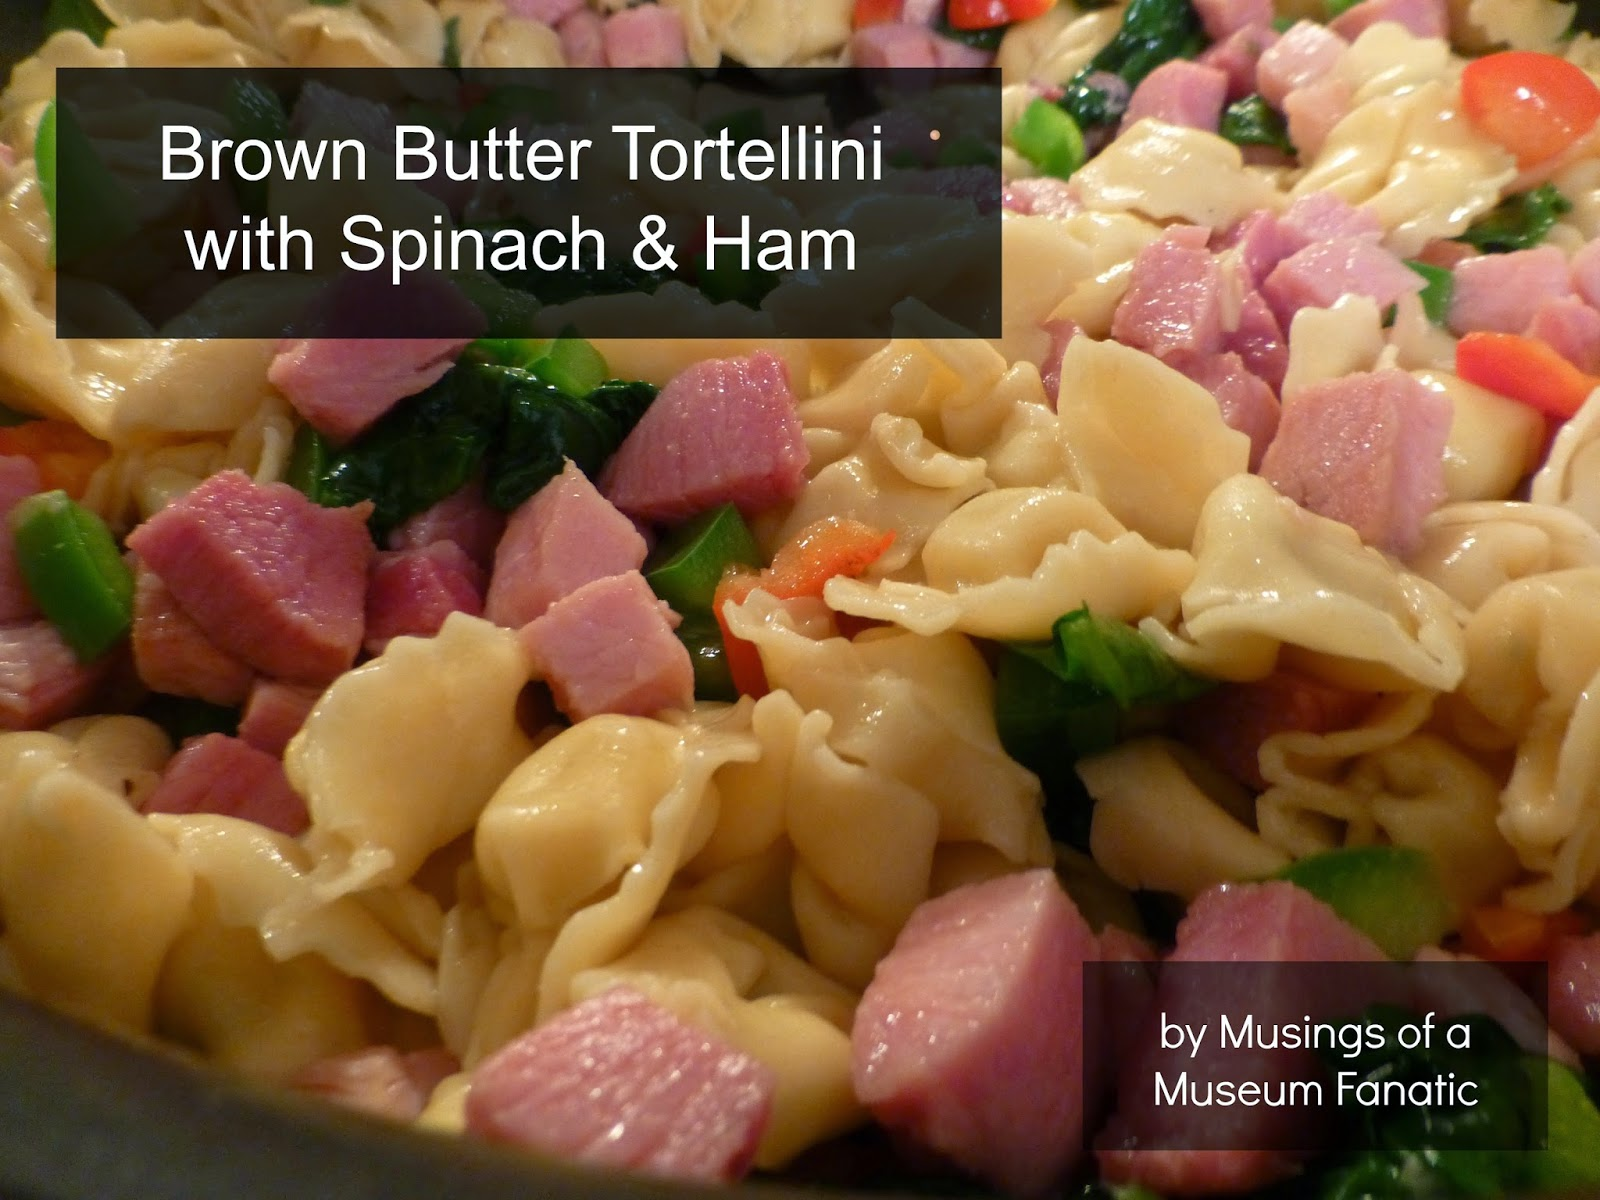 ... of a Museum Fanatic: Brown Butter Tortellini with Spinach & Ham